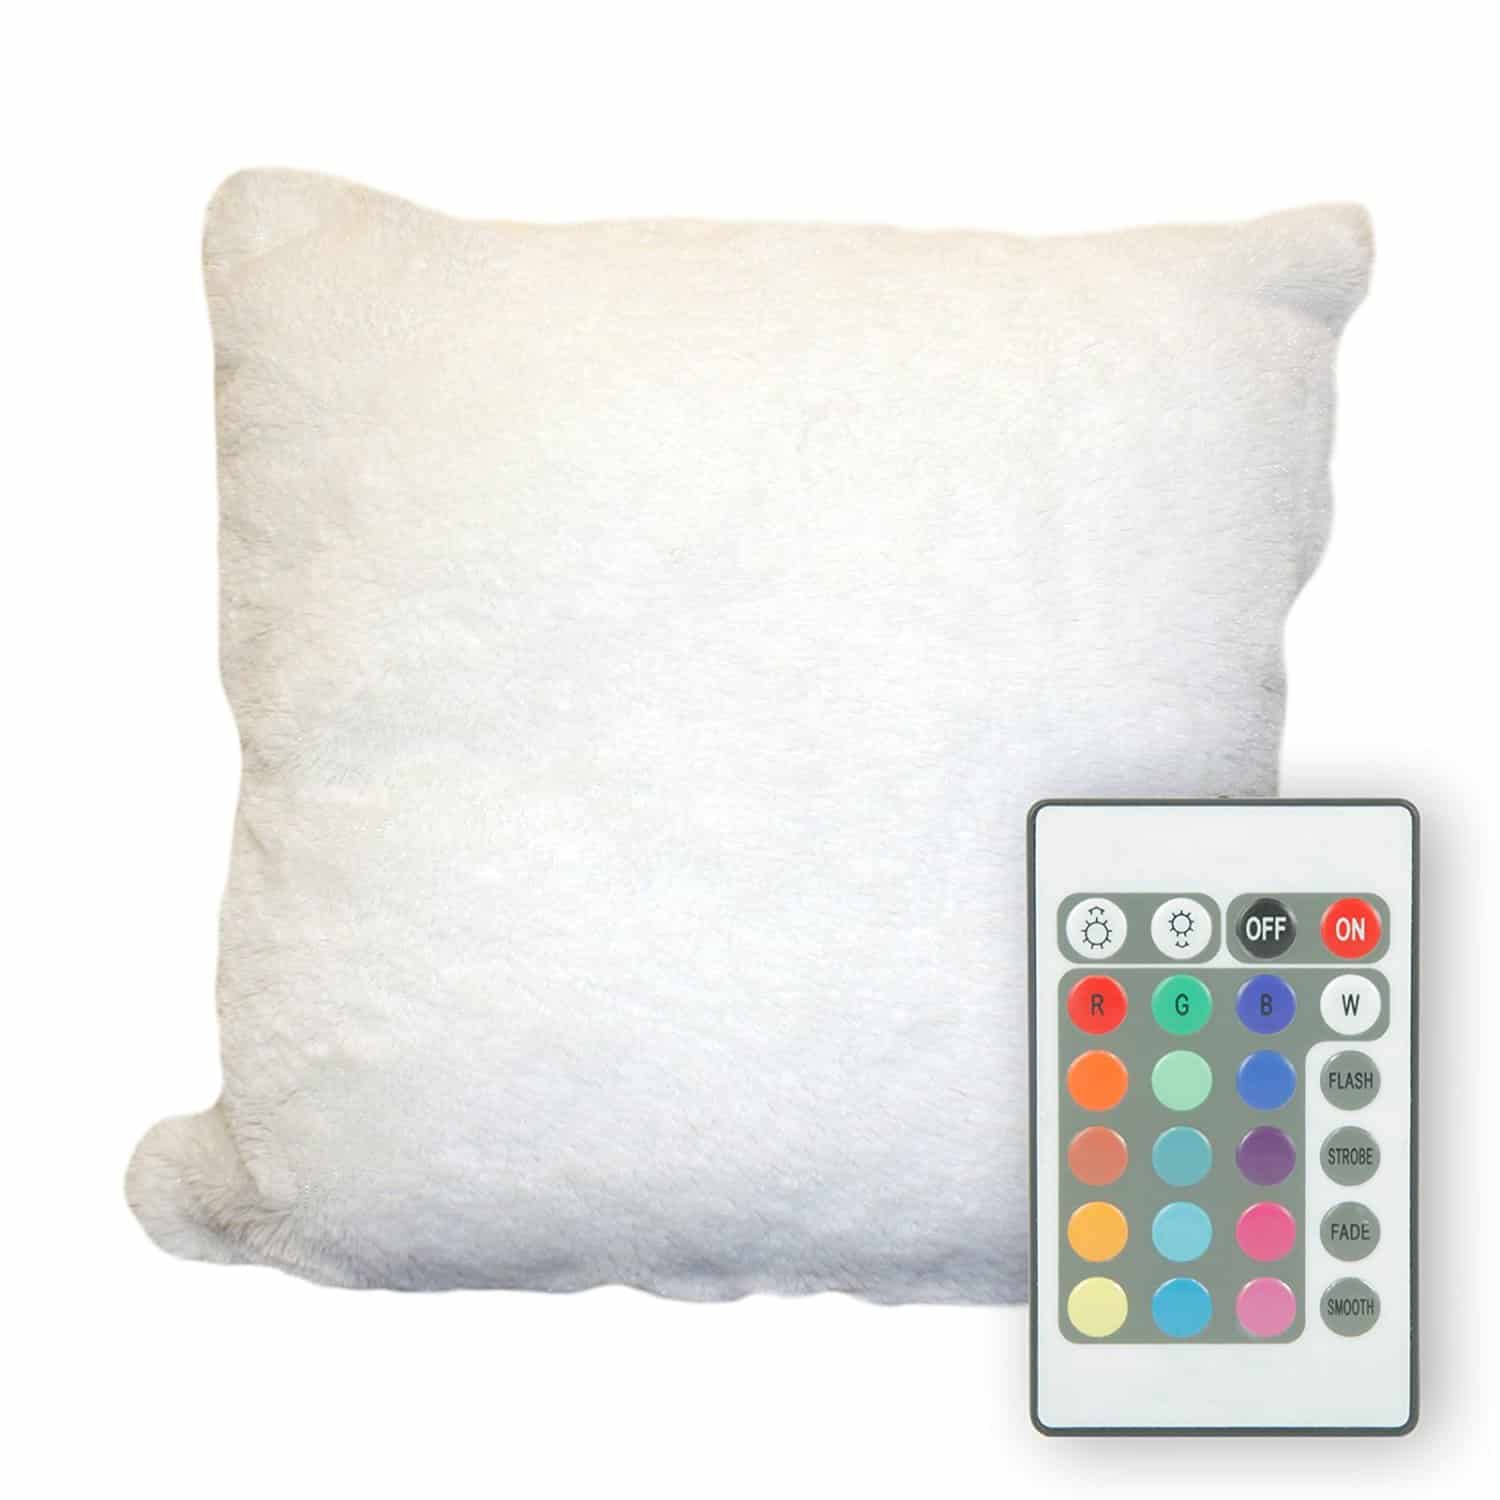 Thumbs Up Moonlight Cushion with LED Lights Remote